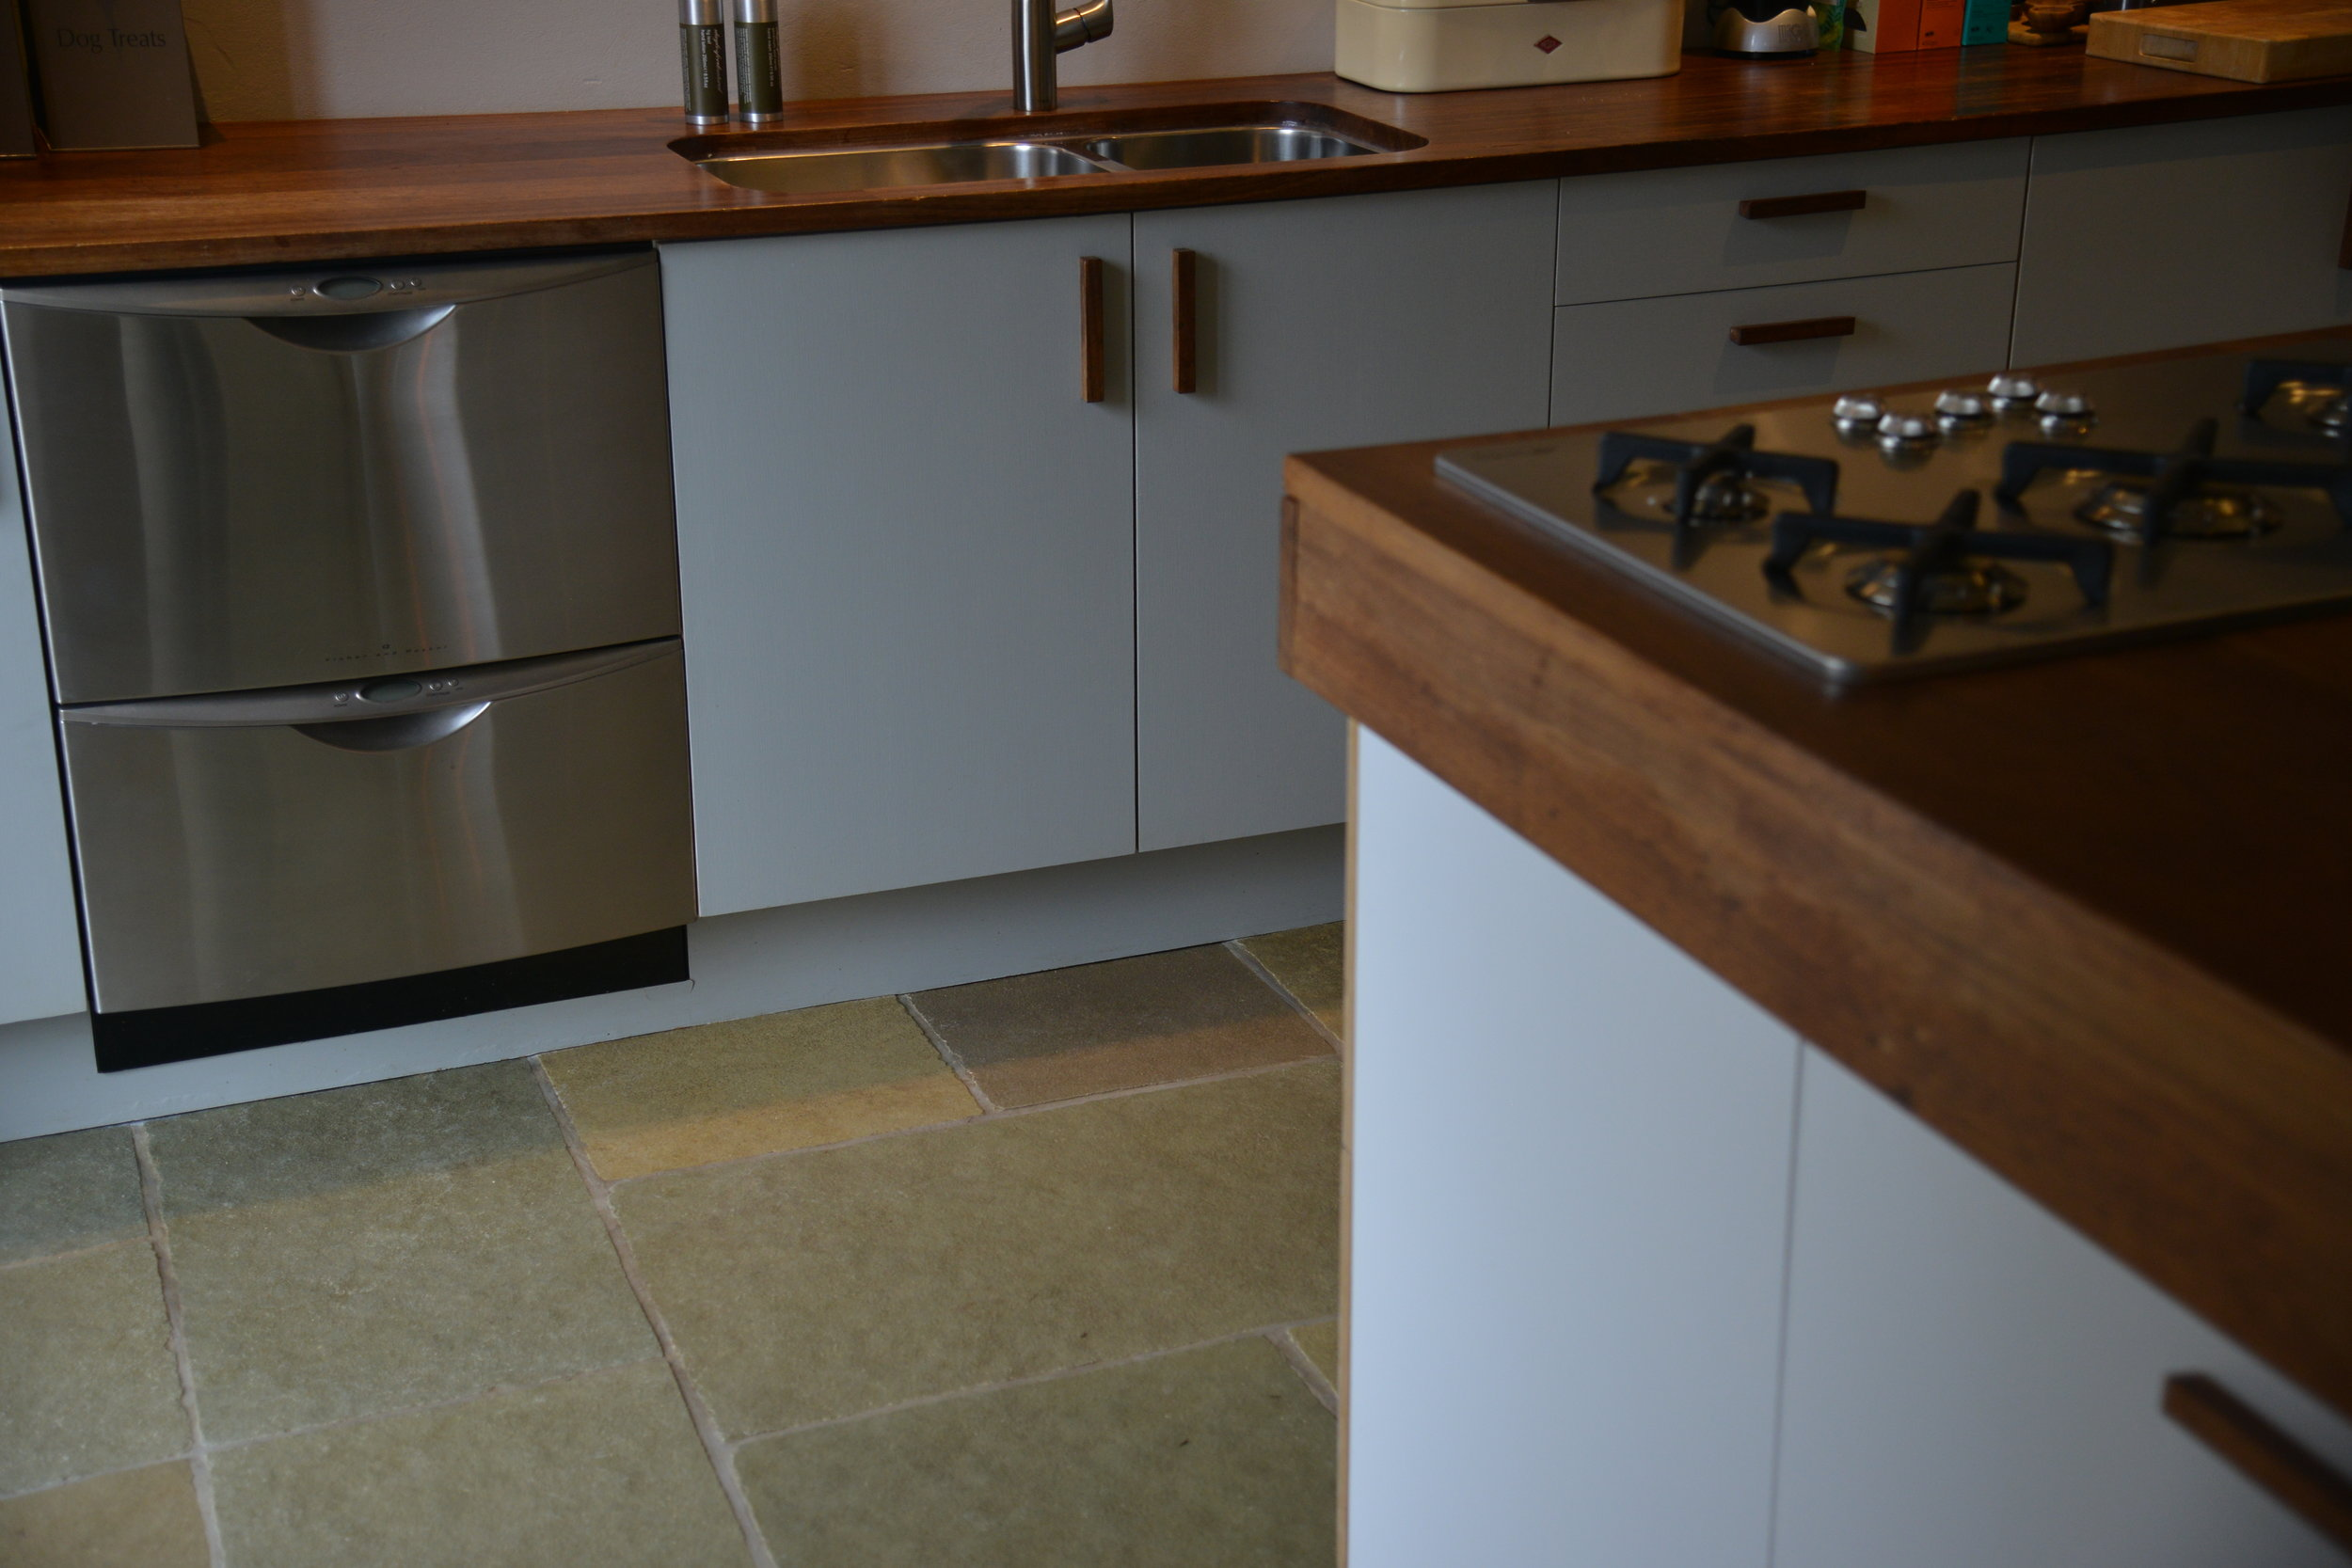 Painted birch plywood cabinets with handles made from iroko to match worktops.